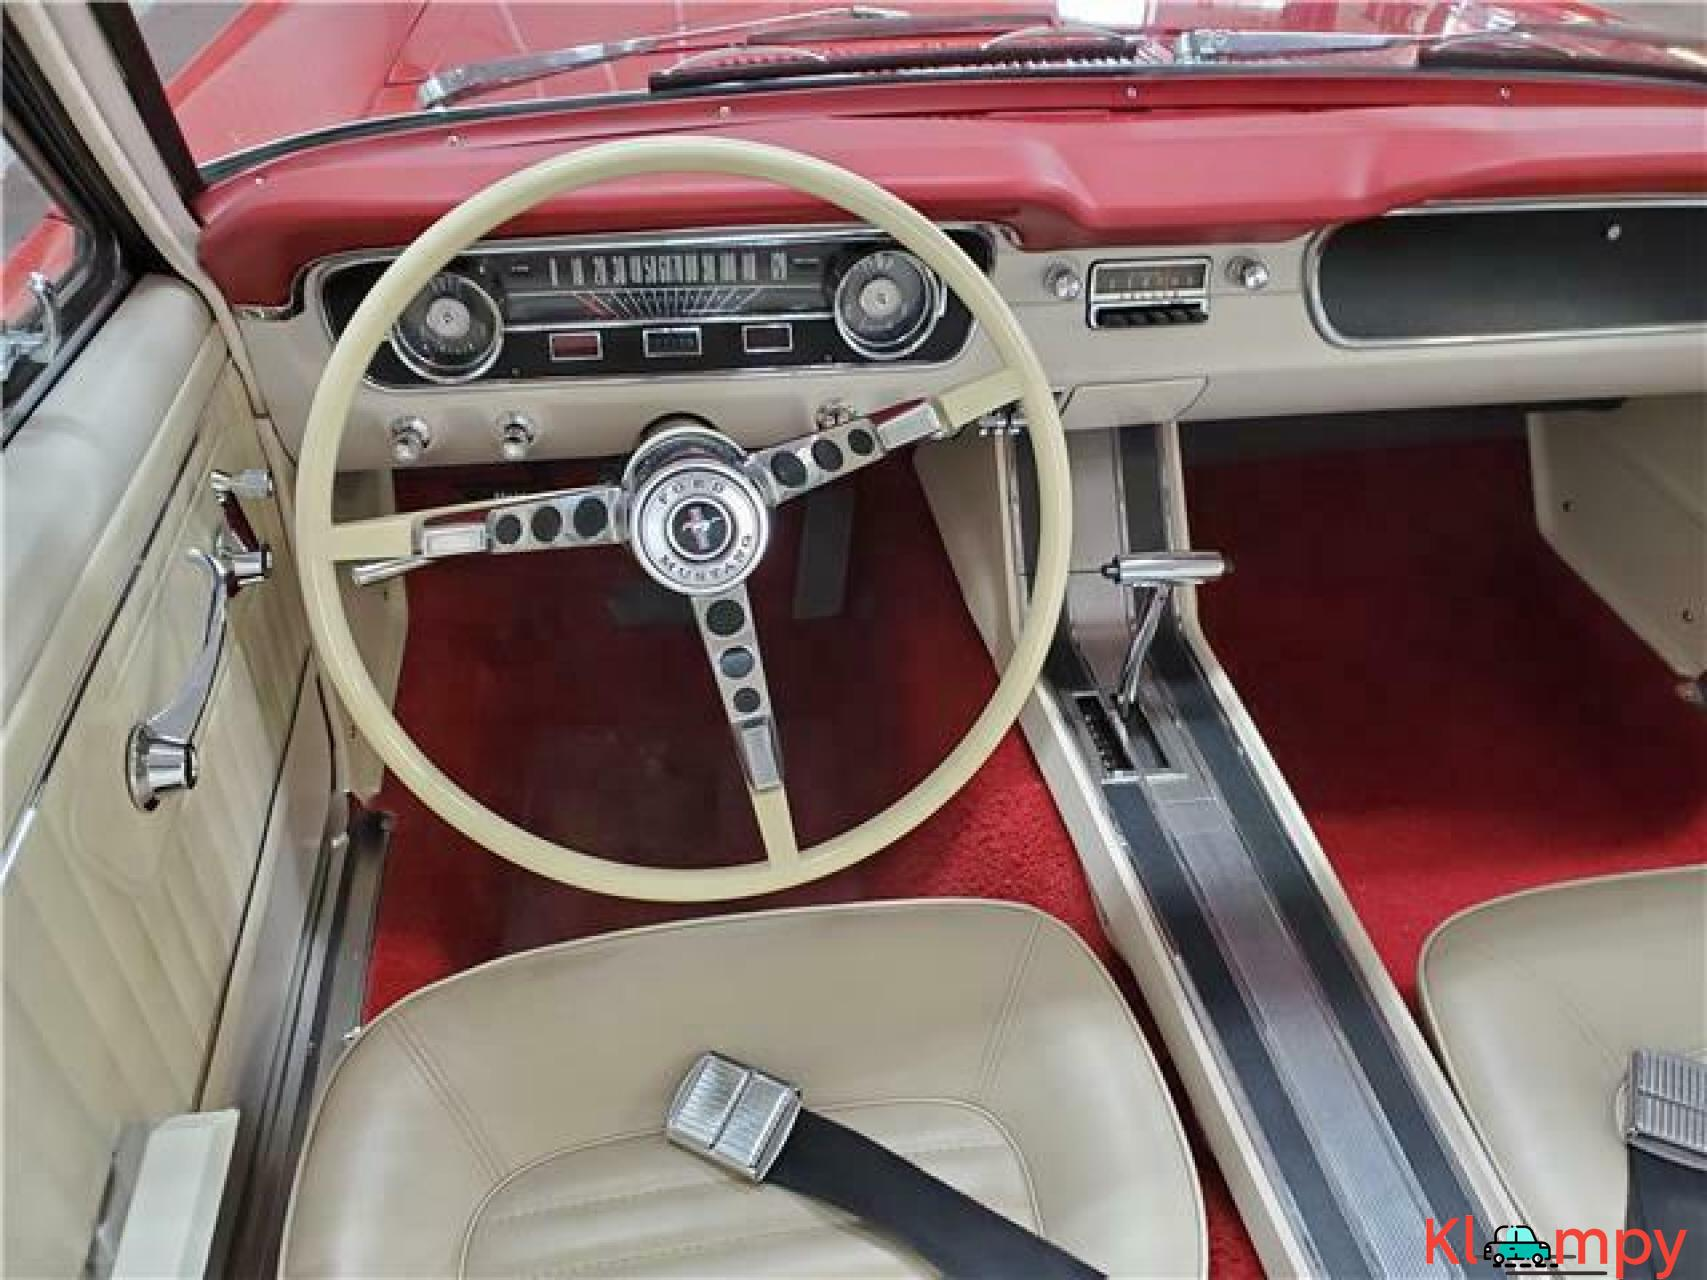 1965 Ford Mustang Rear Wheel Drive - 9/20